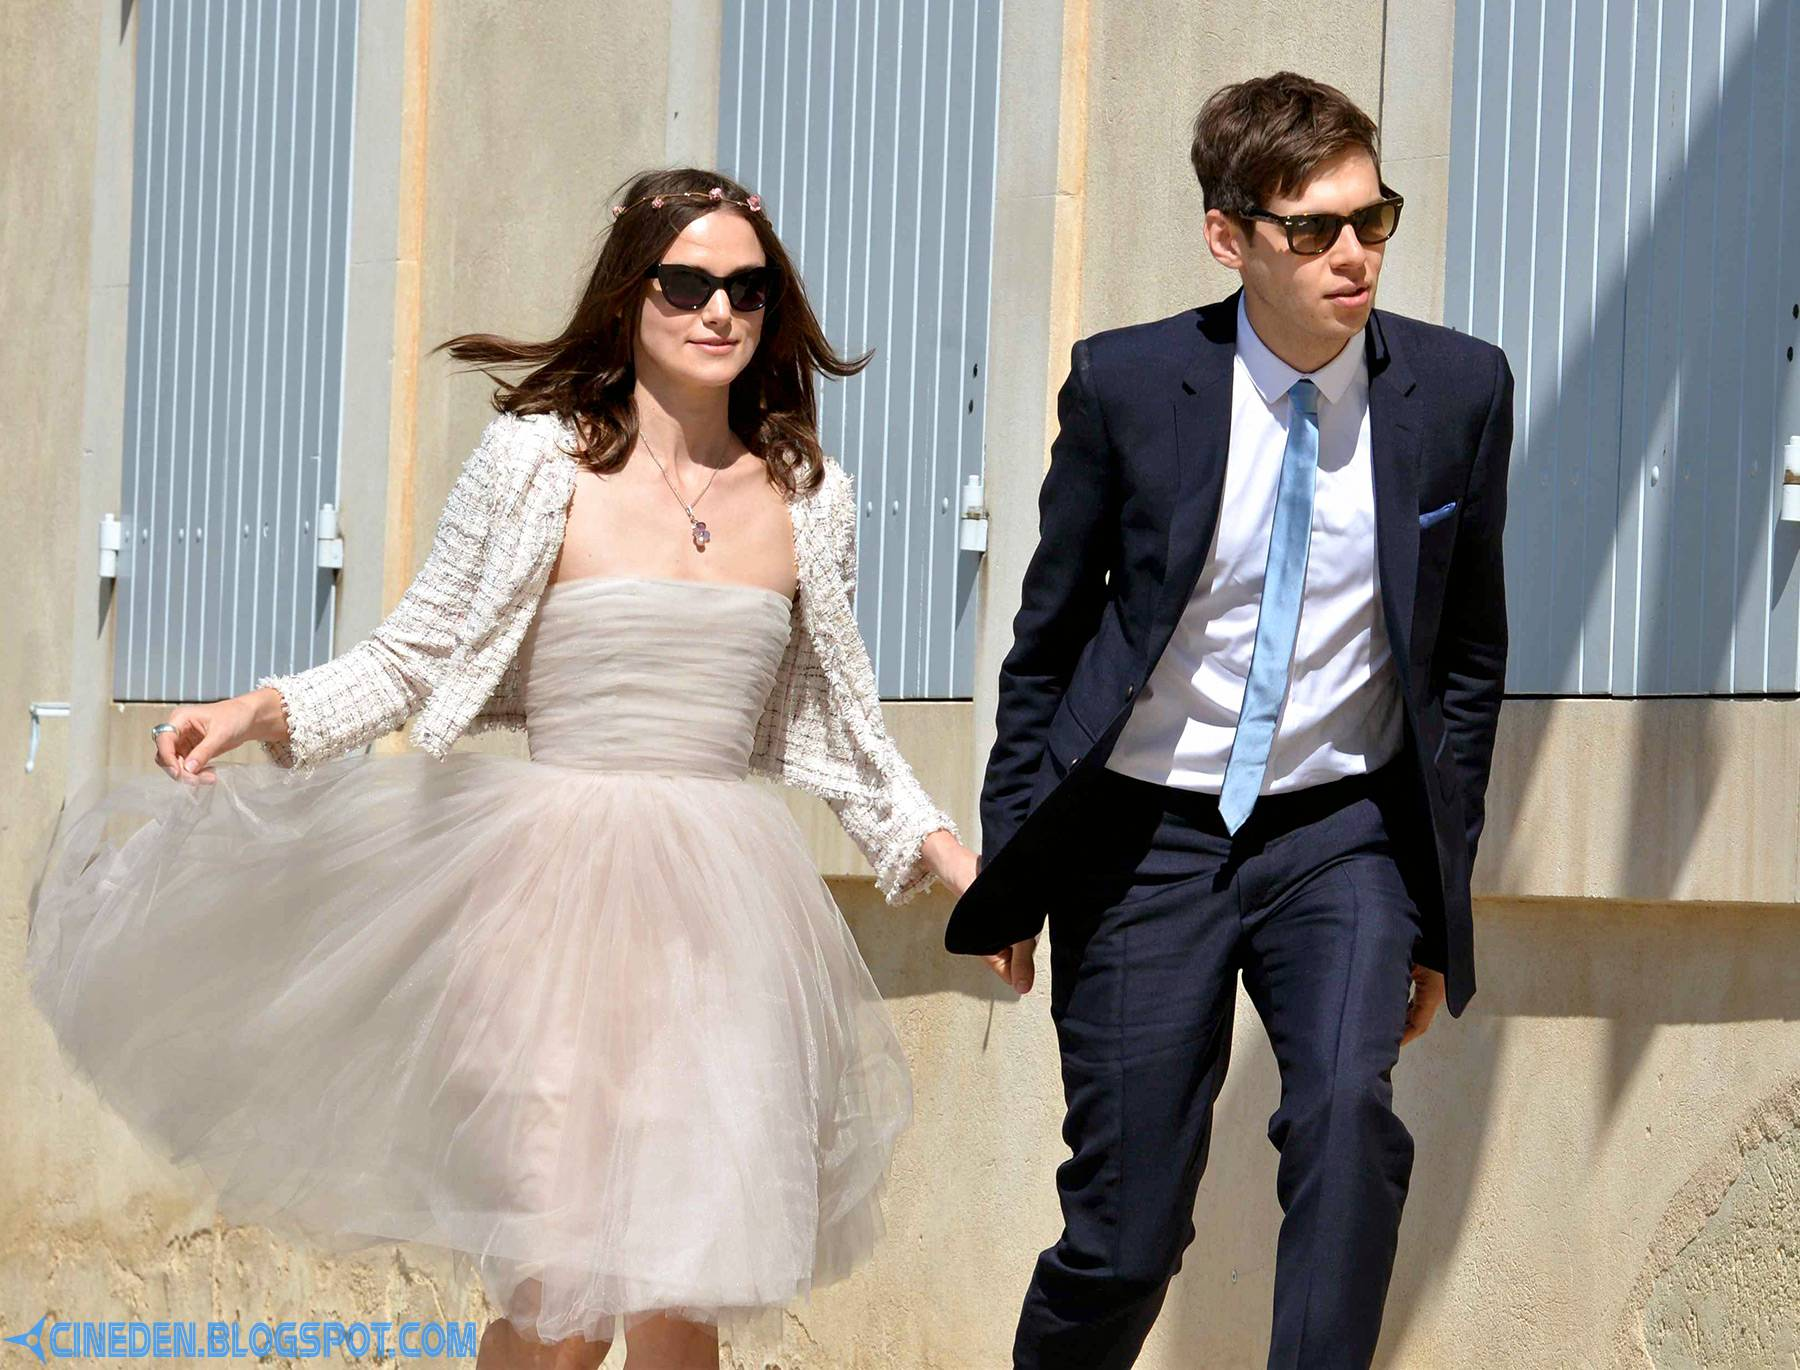 Keira Knightley weds James Righton in France - CineDen